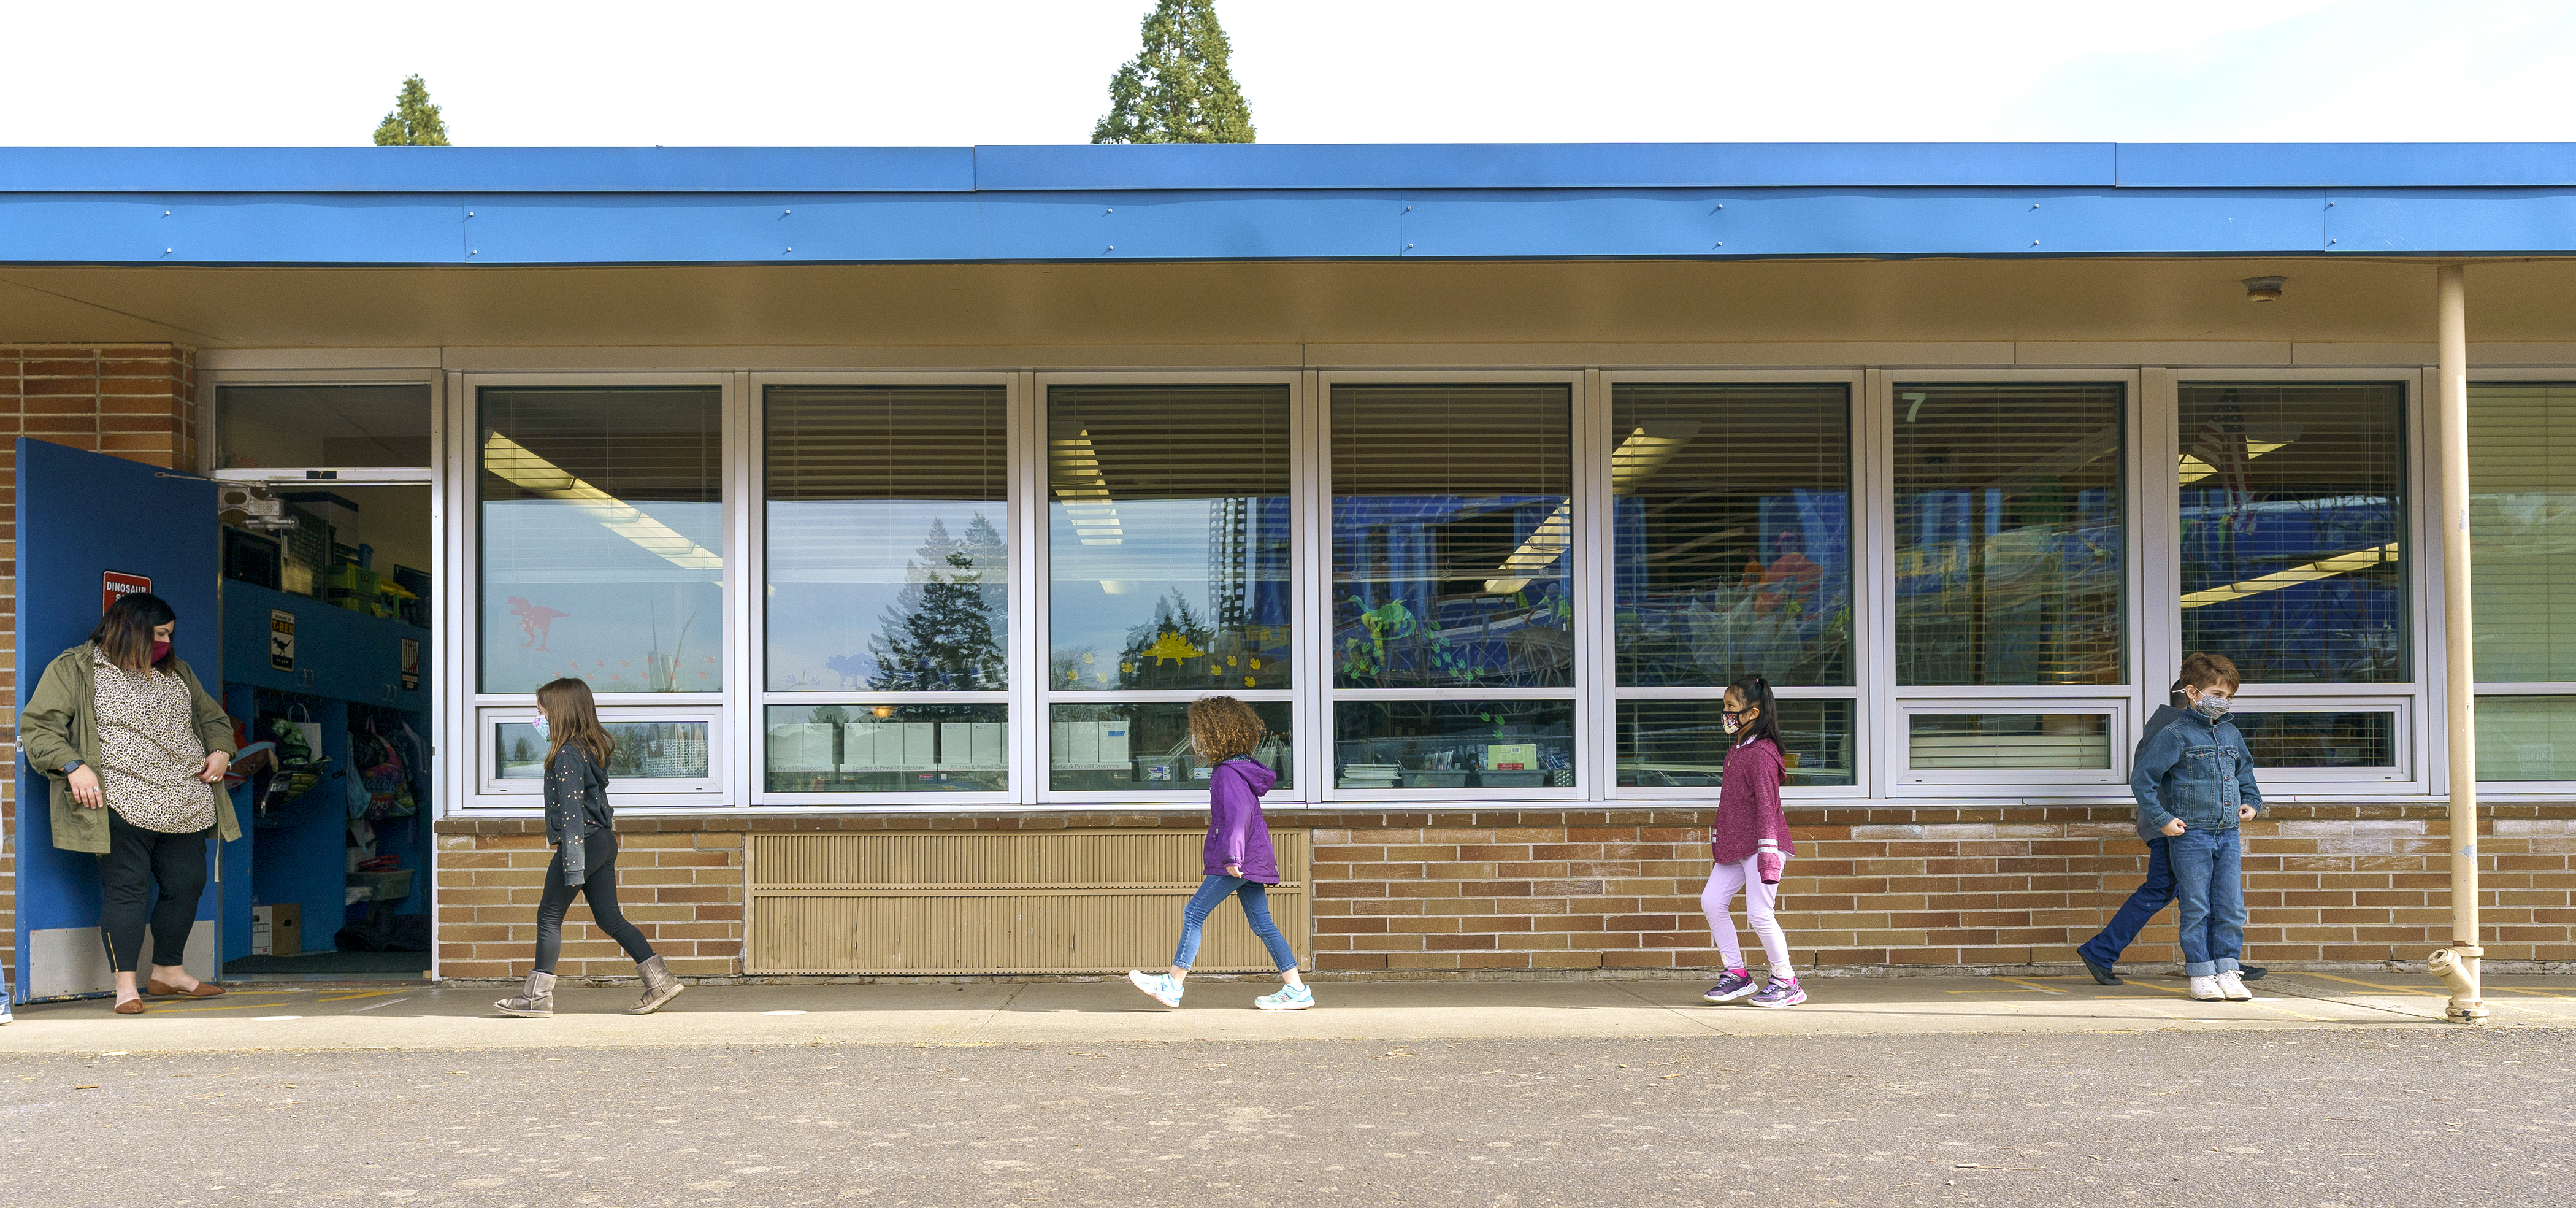 kids walking outside their school building, with a long row of windows behind them